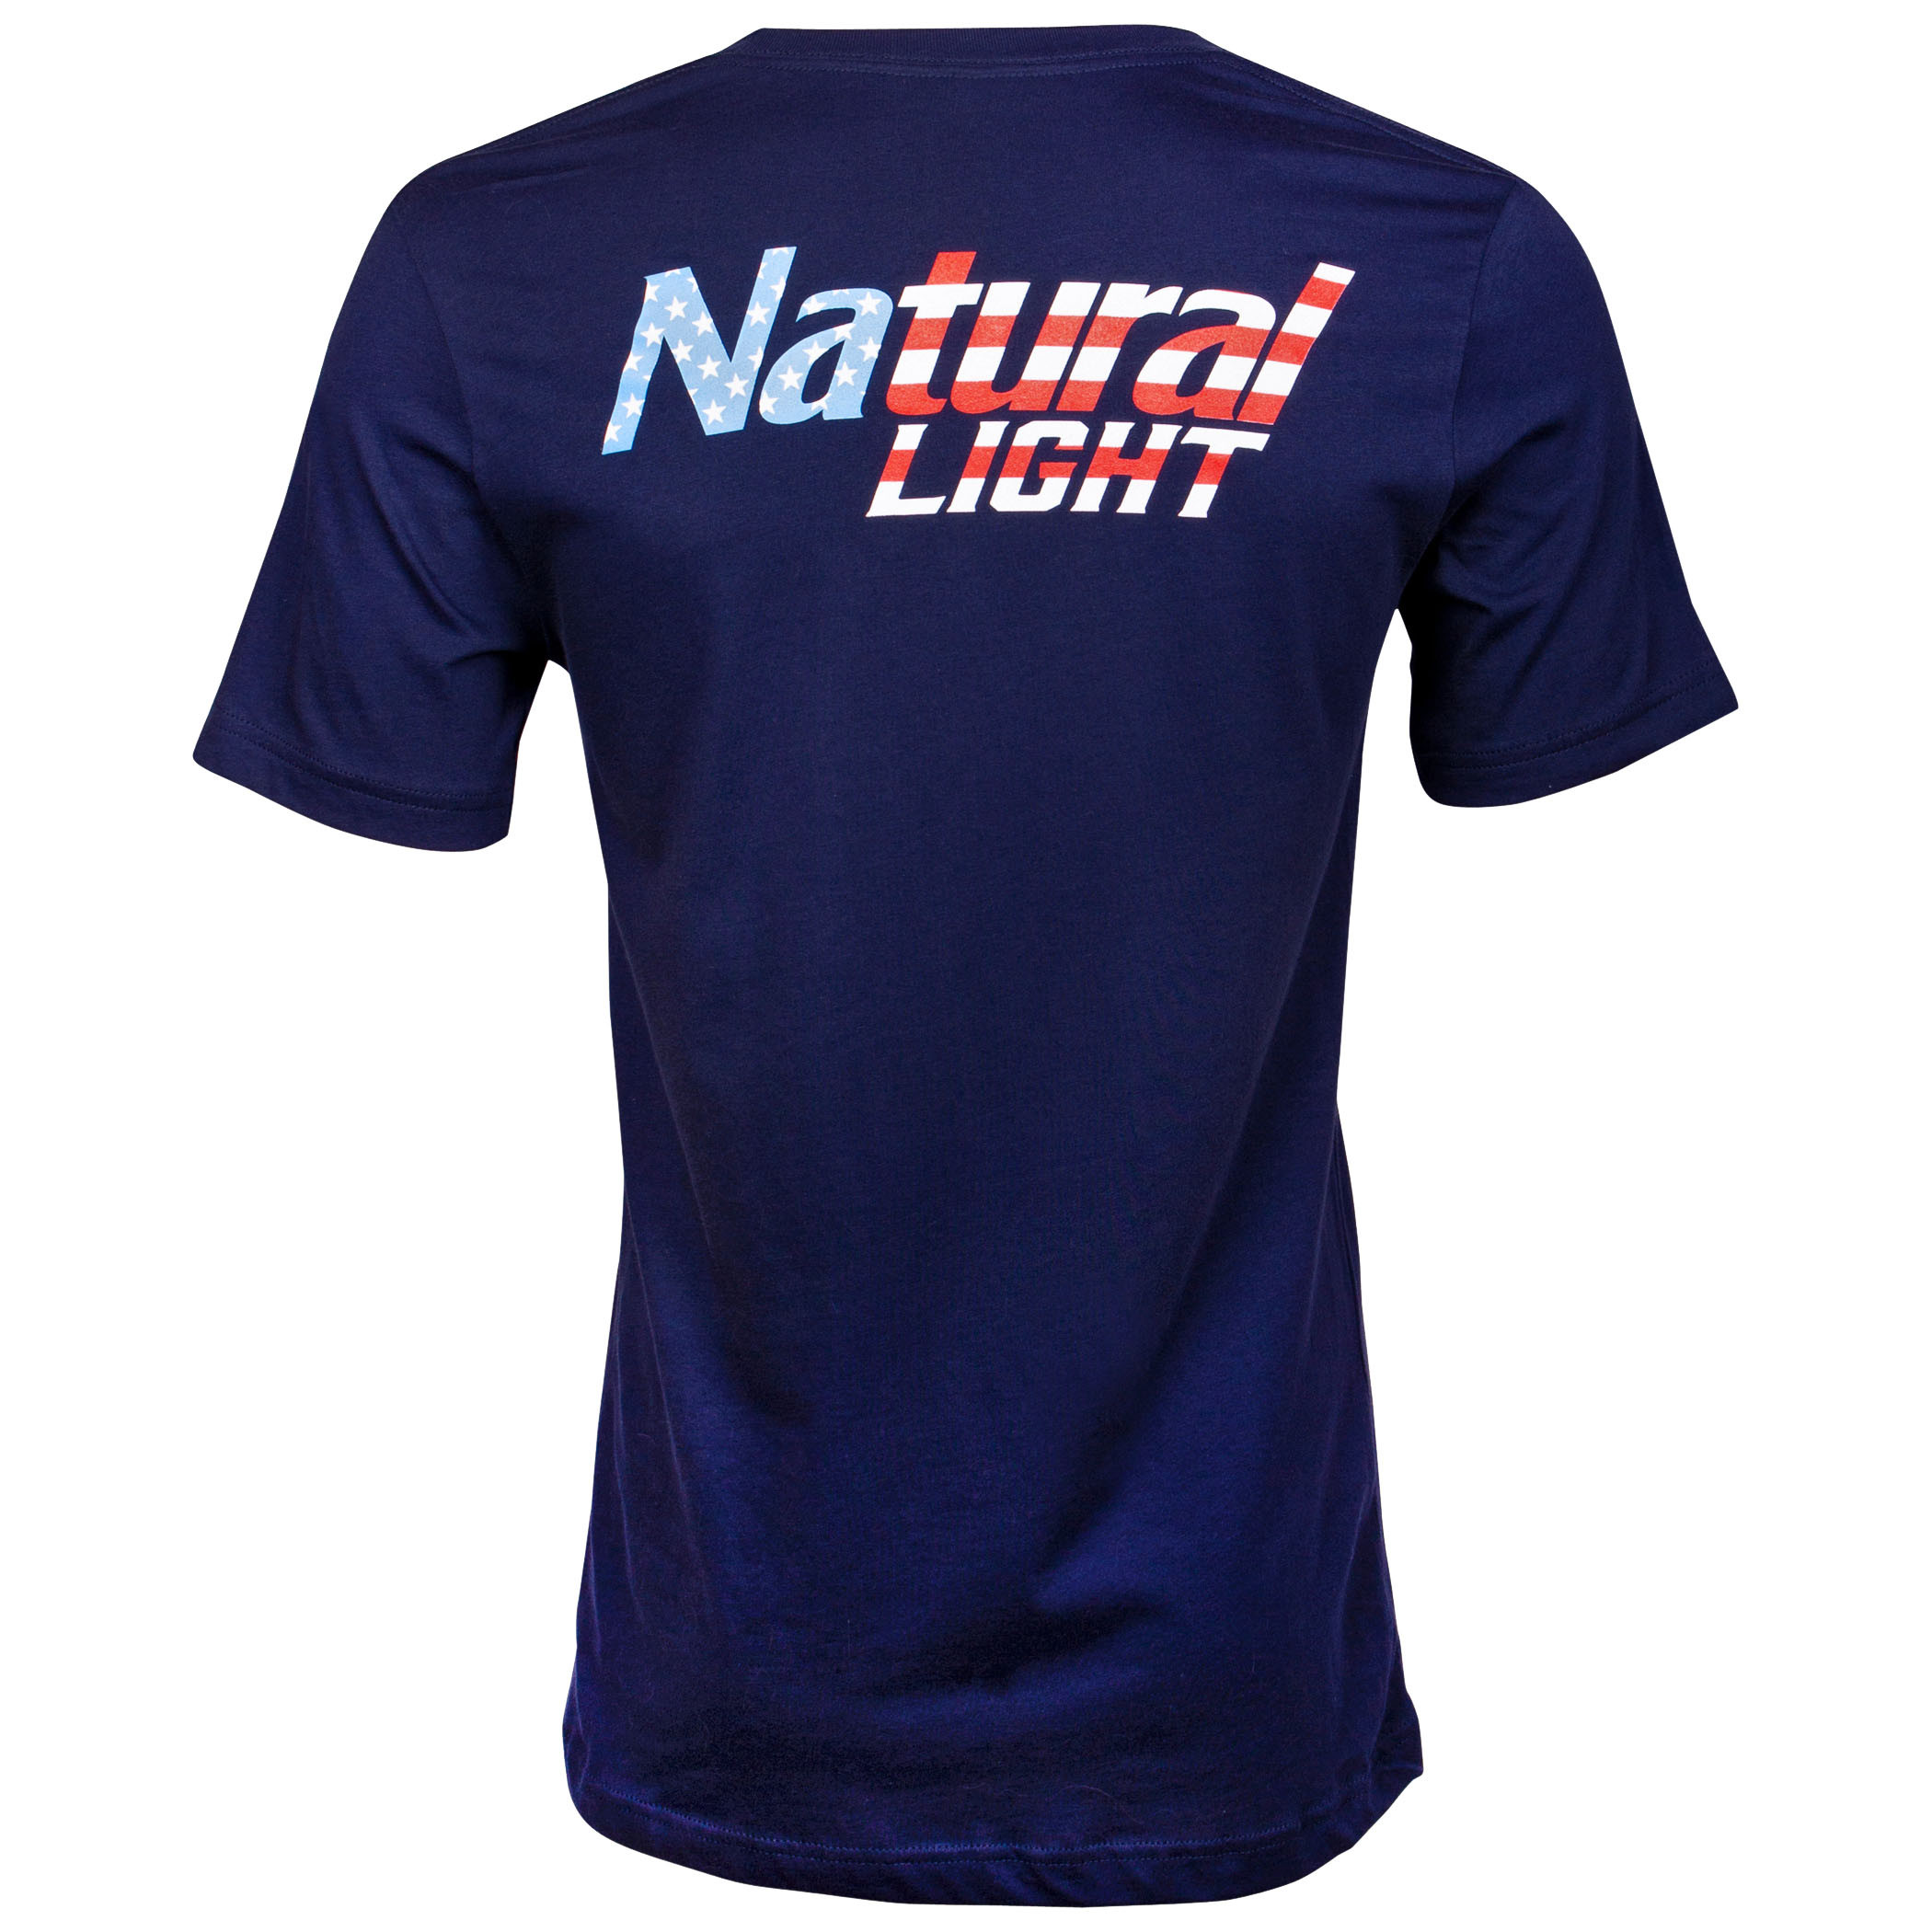 Natural Light Red White and Blue Logo T-Shirt